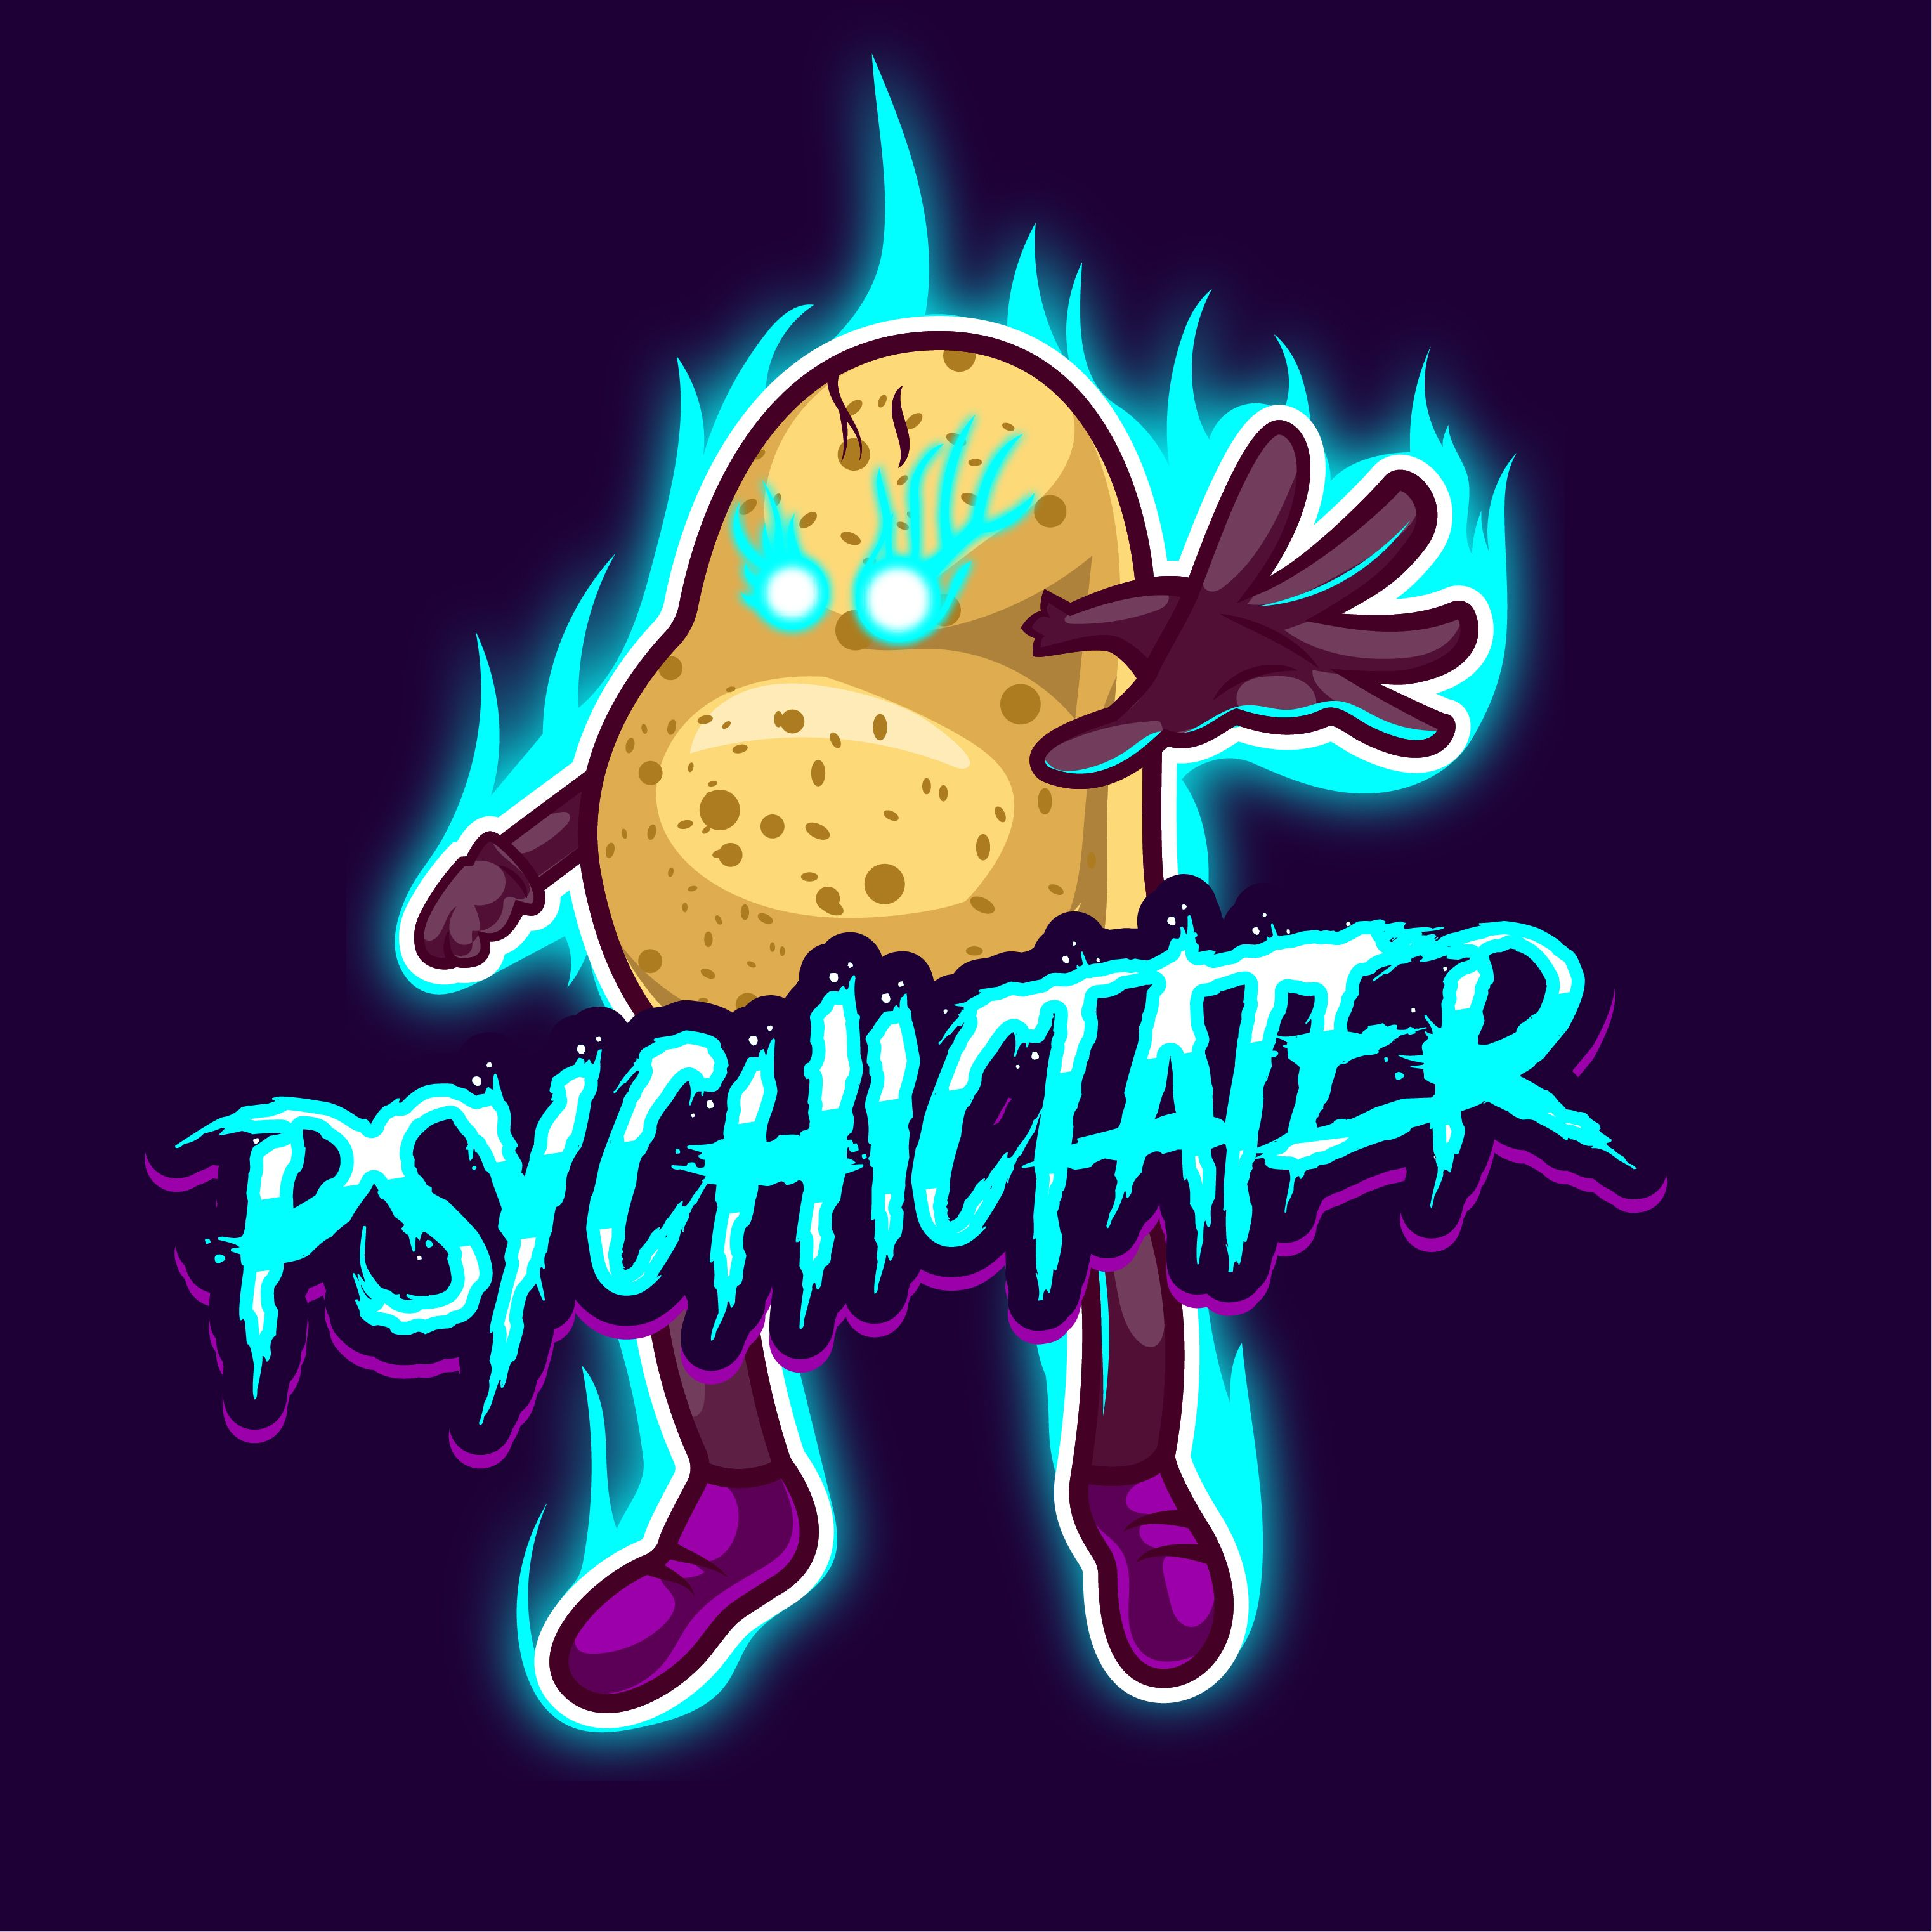 ThePsychicTater in 2020 Twitch channel, Twitch, Neon signs